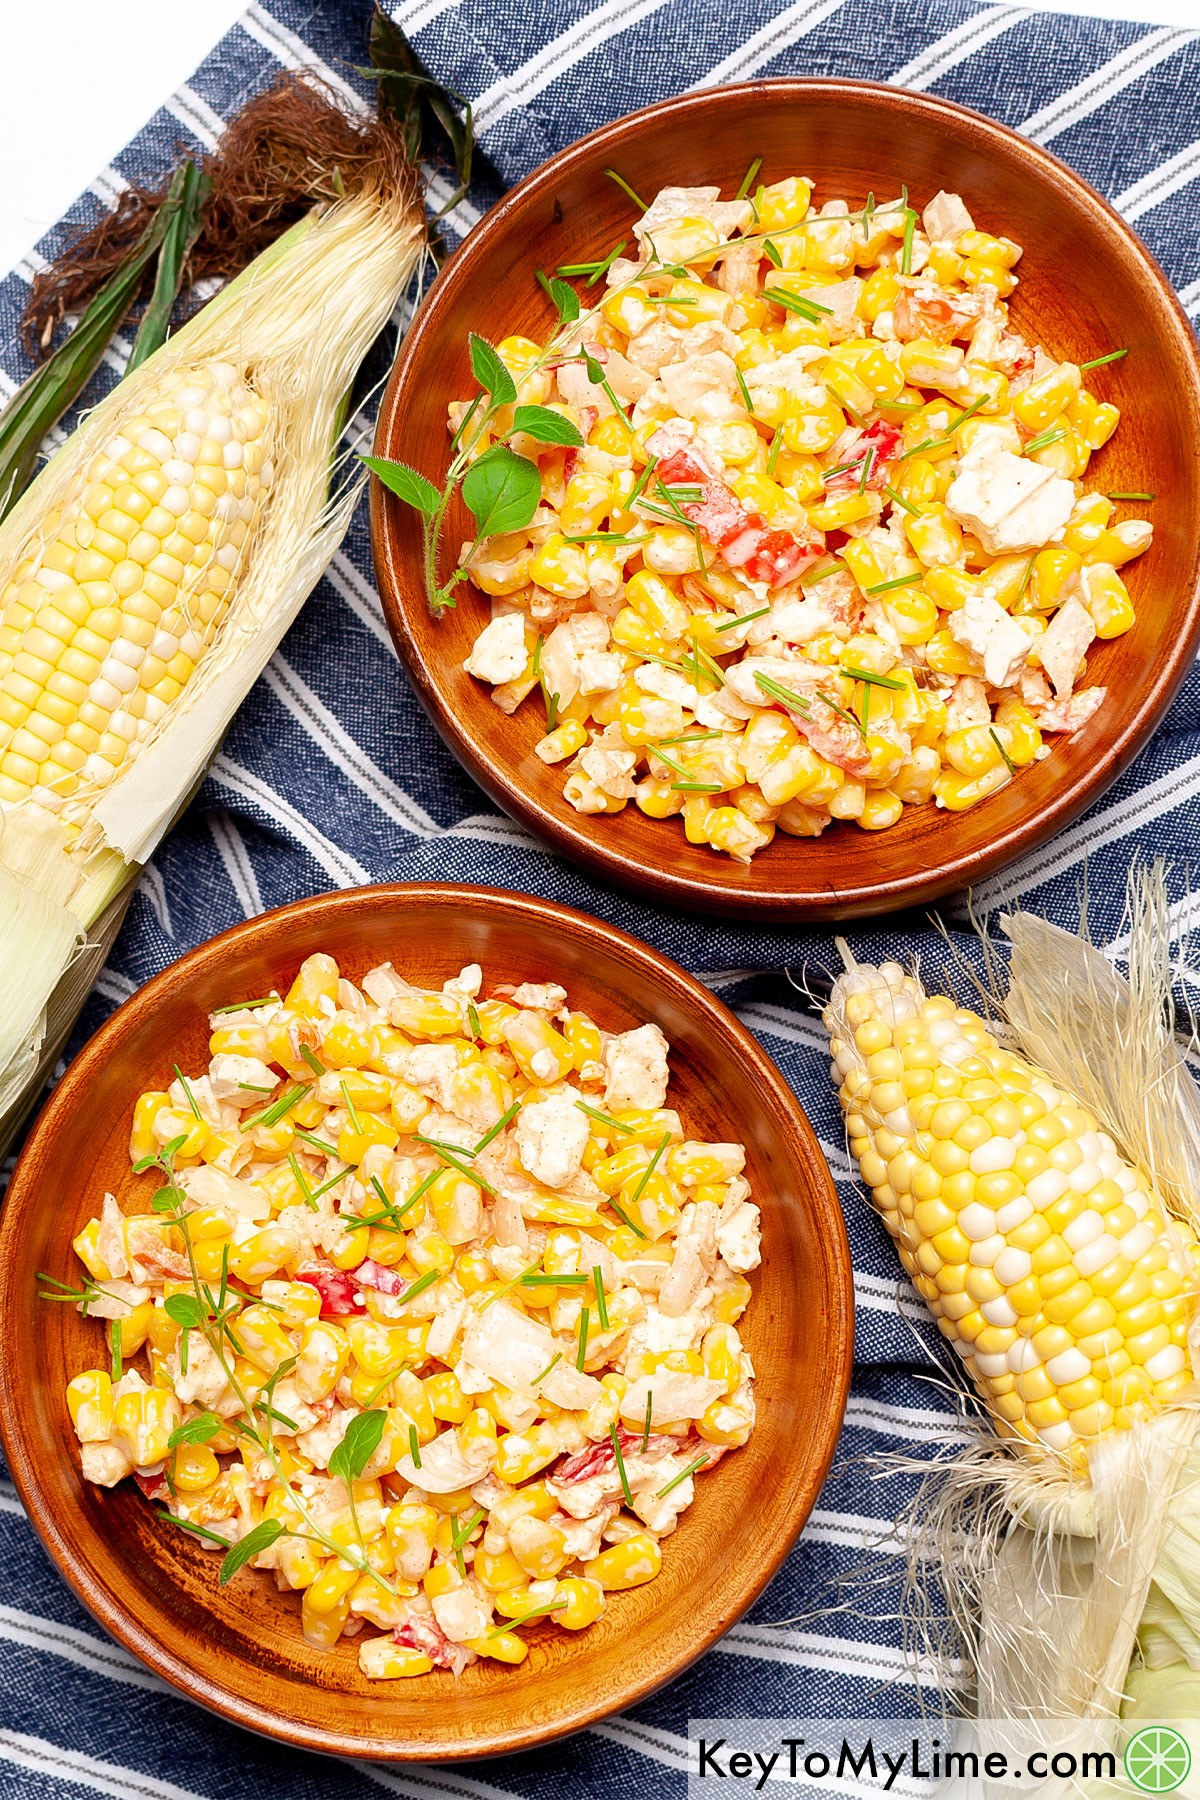 Two bowls of Mexican street corn salad next to ears of corn.